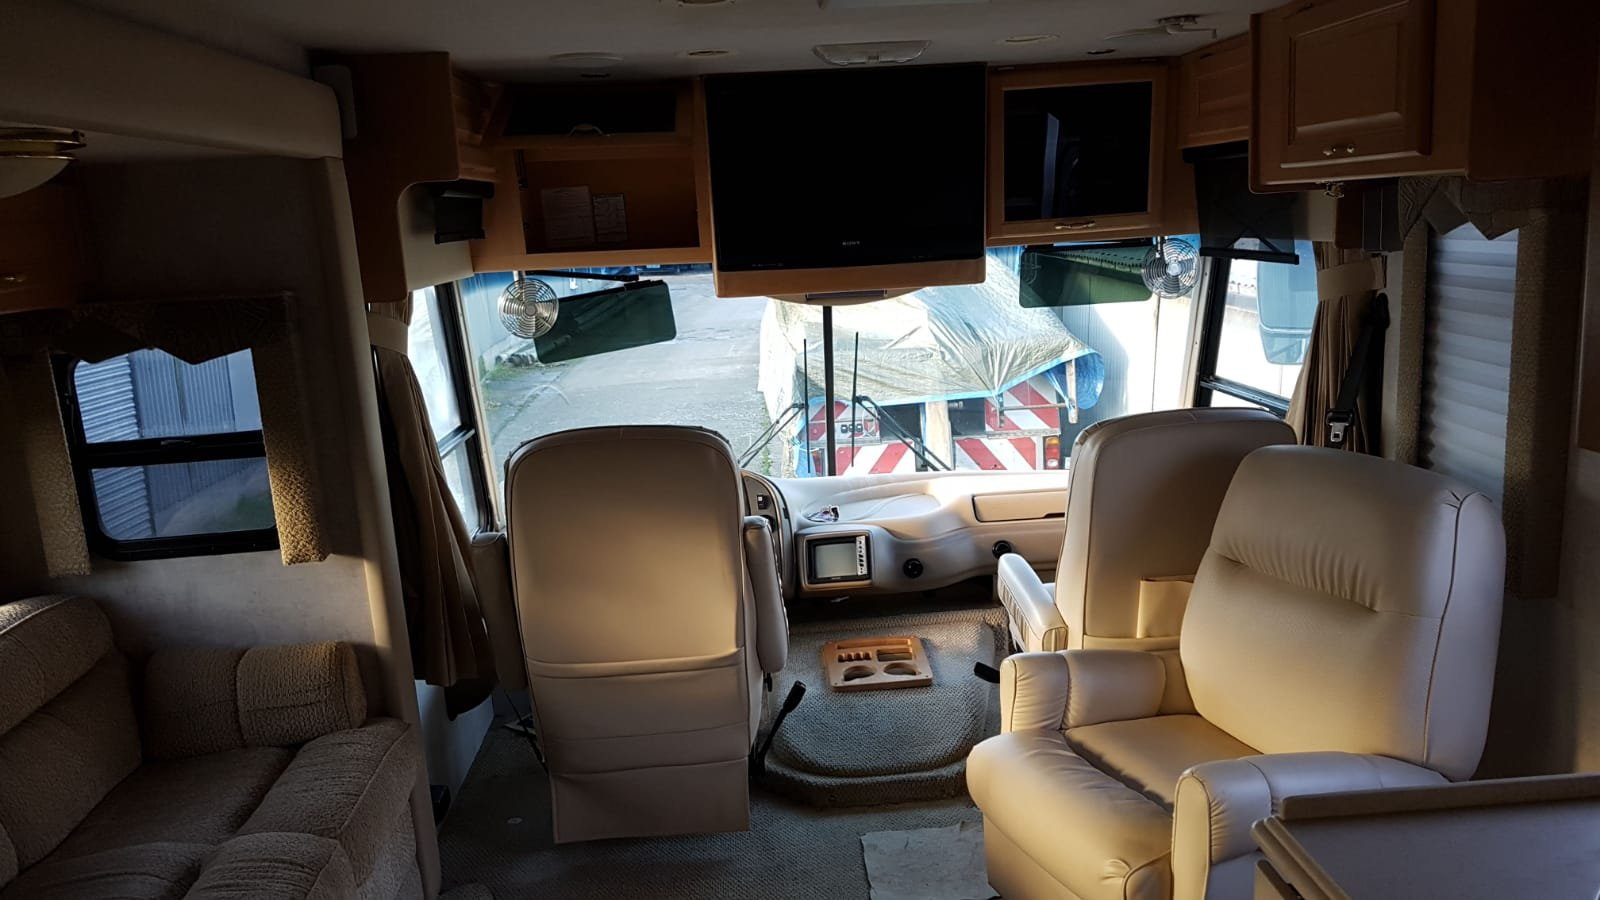 2005 seabreeze motorhome For Sale (picture 6 of 6)